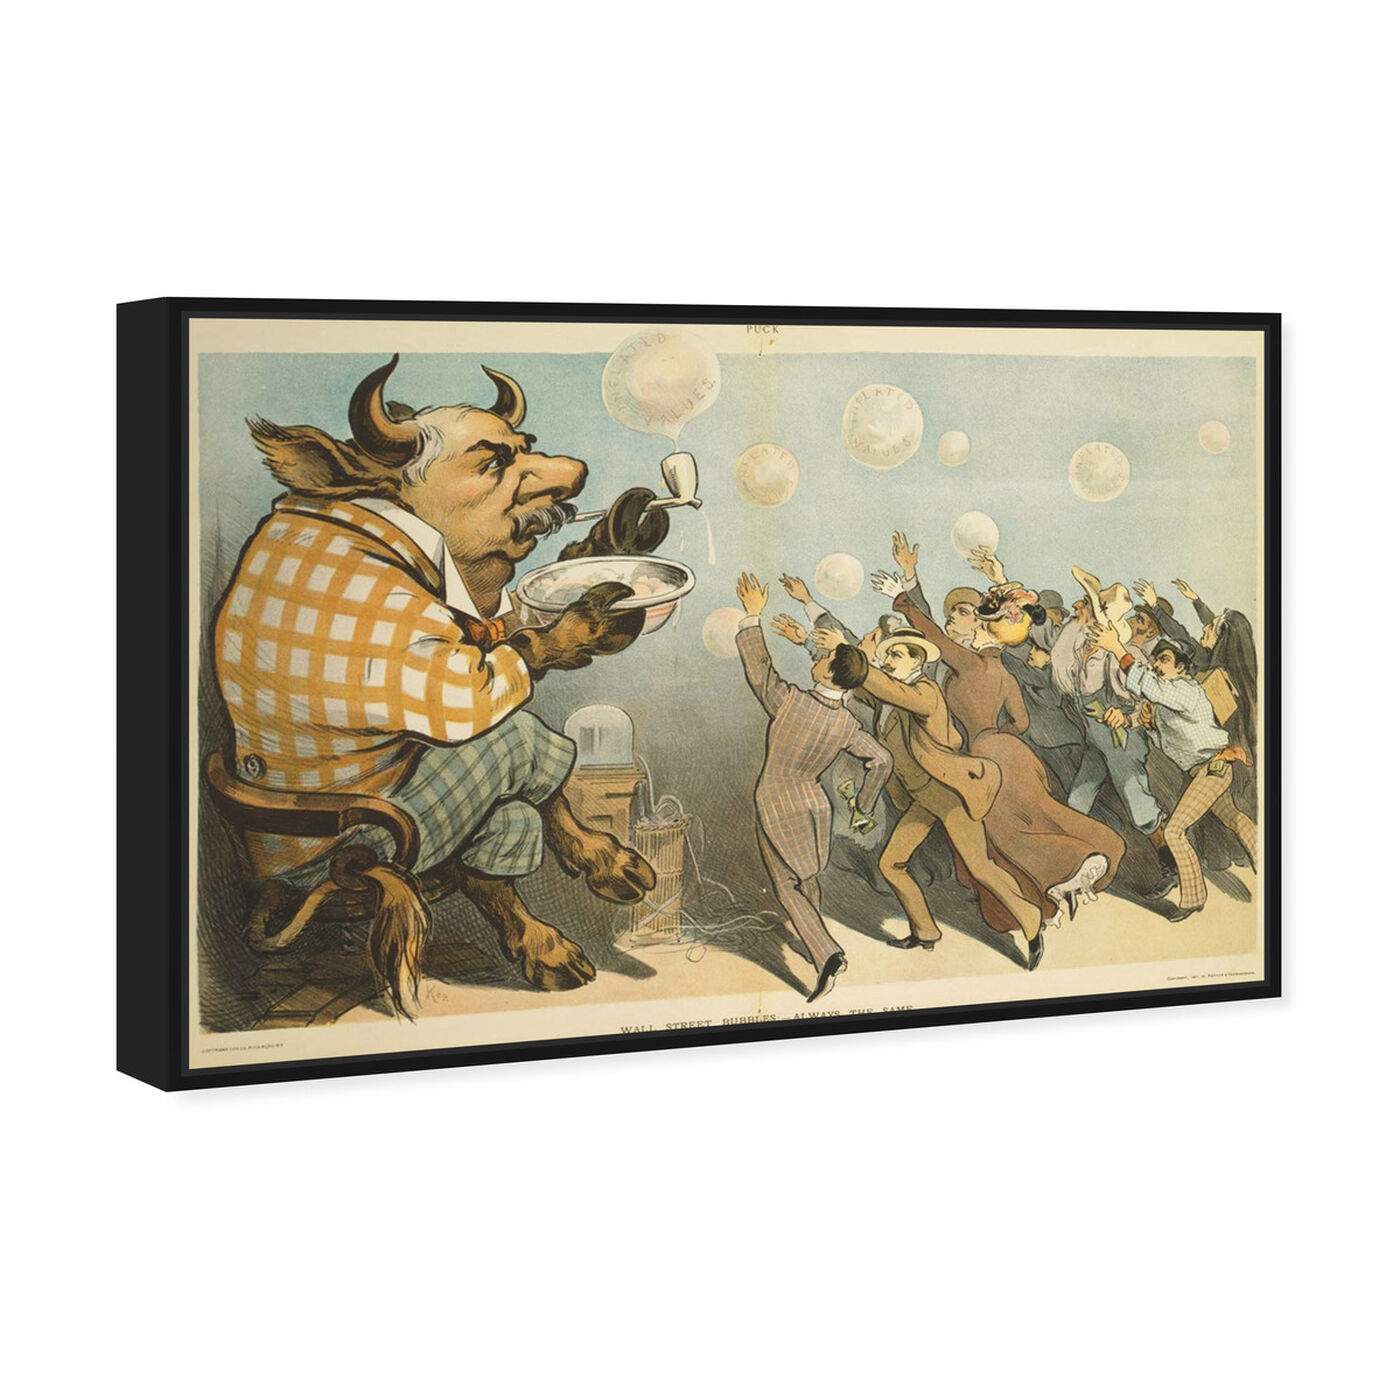 Angled view of Wall Street Bubbles featuring classic and figurative and modern classic art.